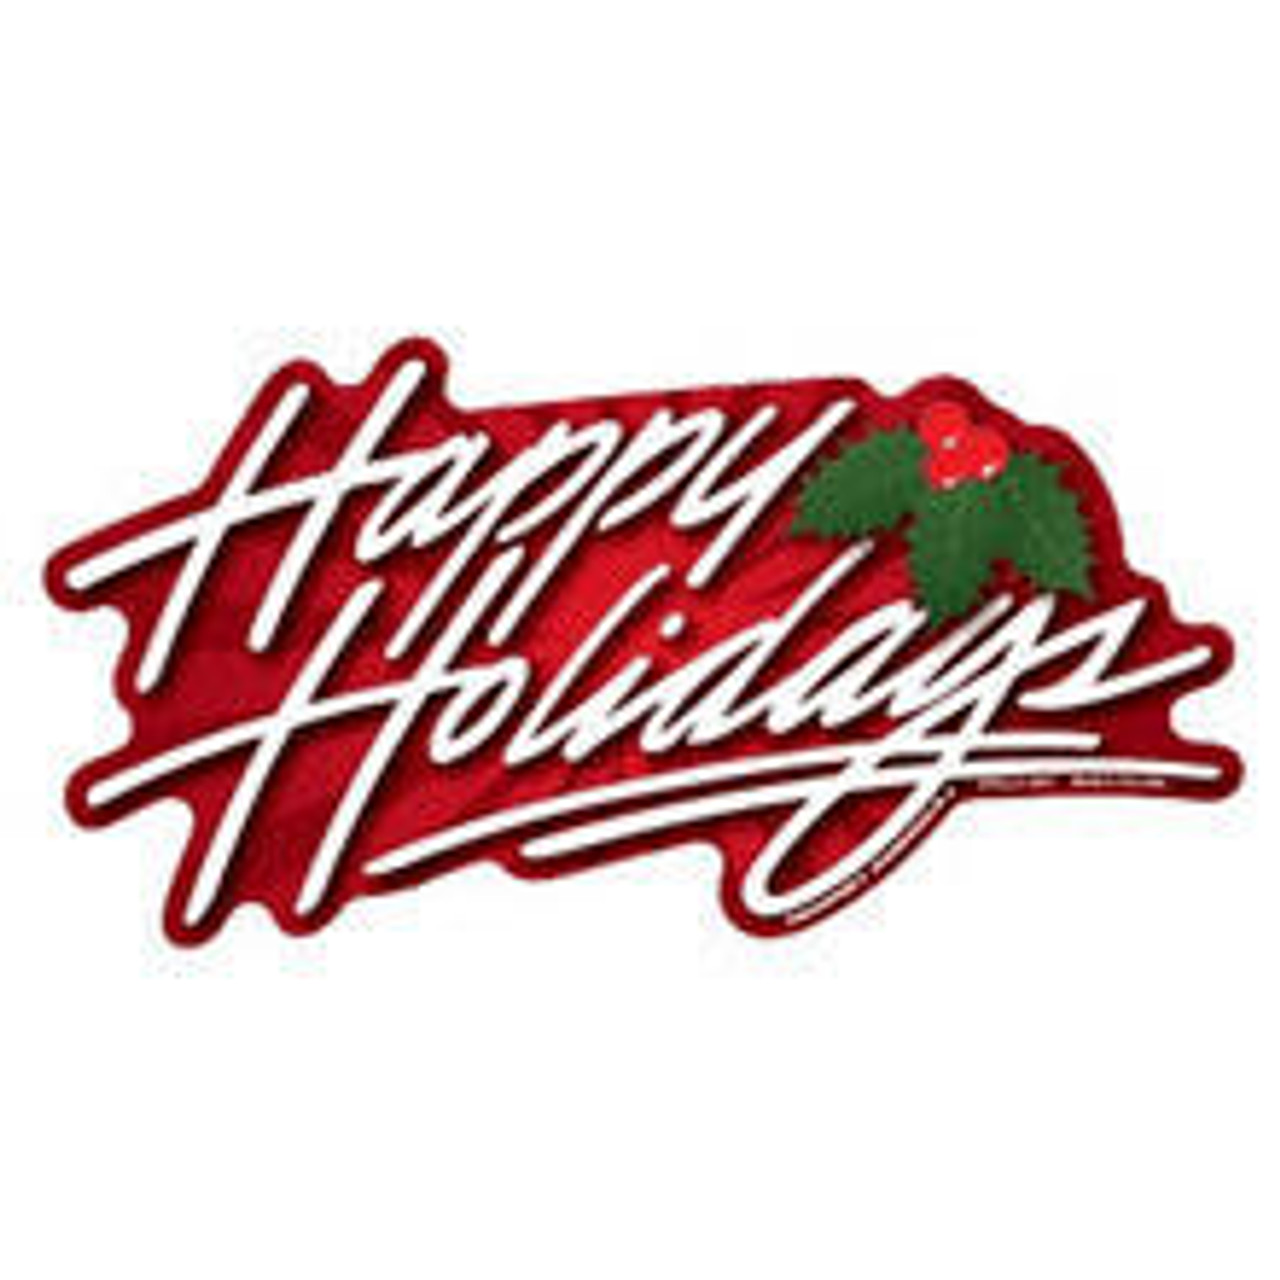 A Happy Holidays Magnet printed on vinyl and backed with .30 mil magnetic material. Design says happy holidays in white cursive text, with a red border and a mistletoe image.